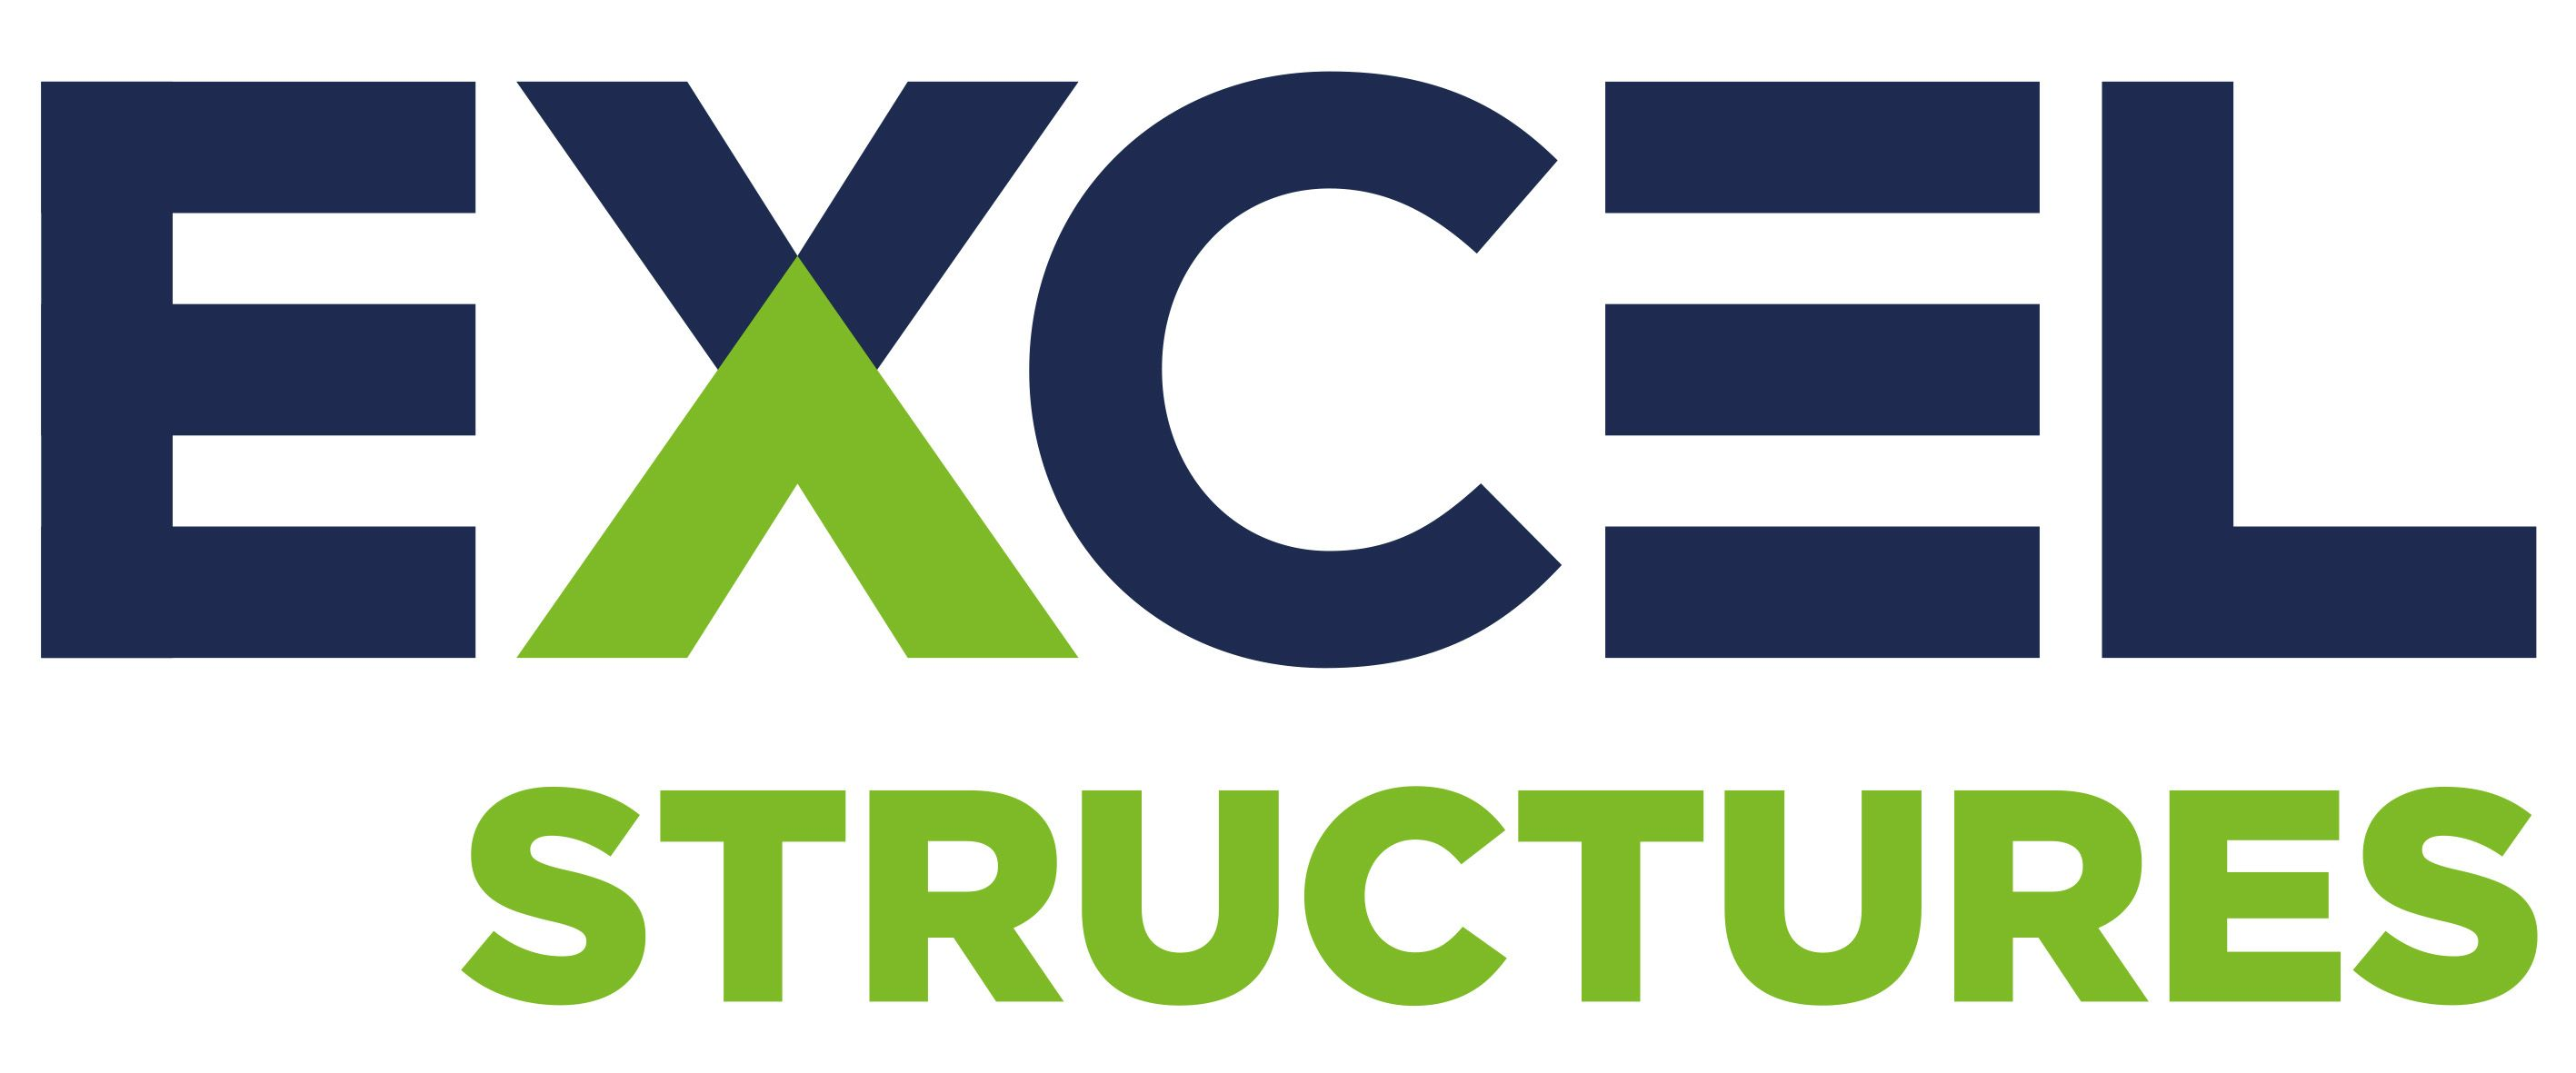 Excel Structures - An Introduction